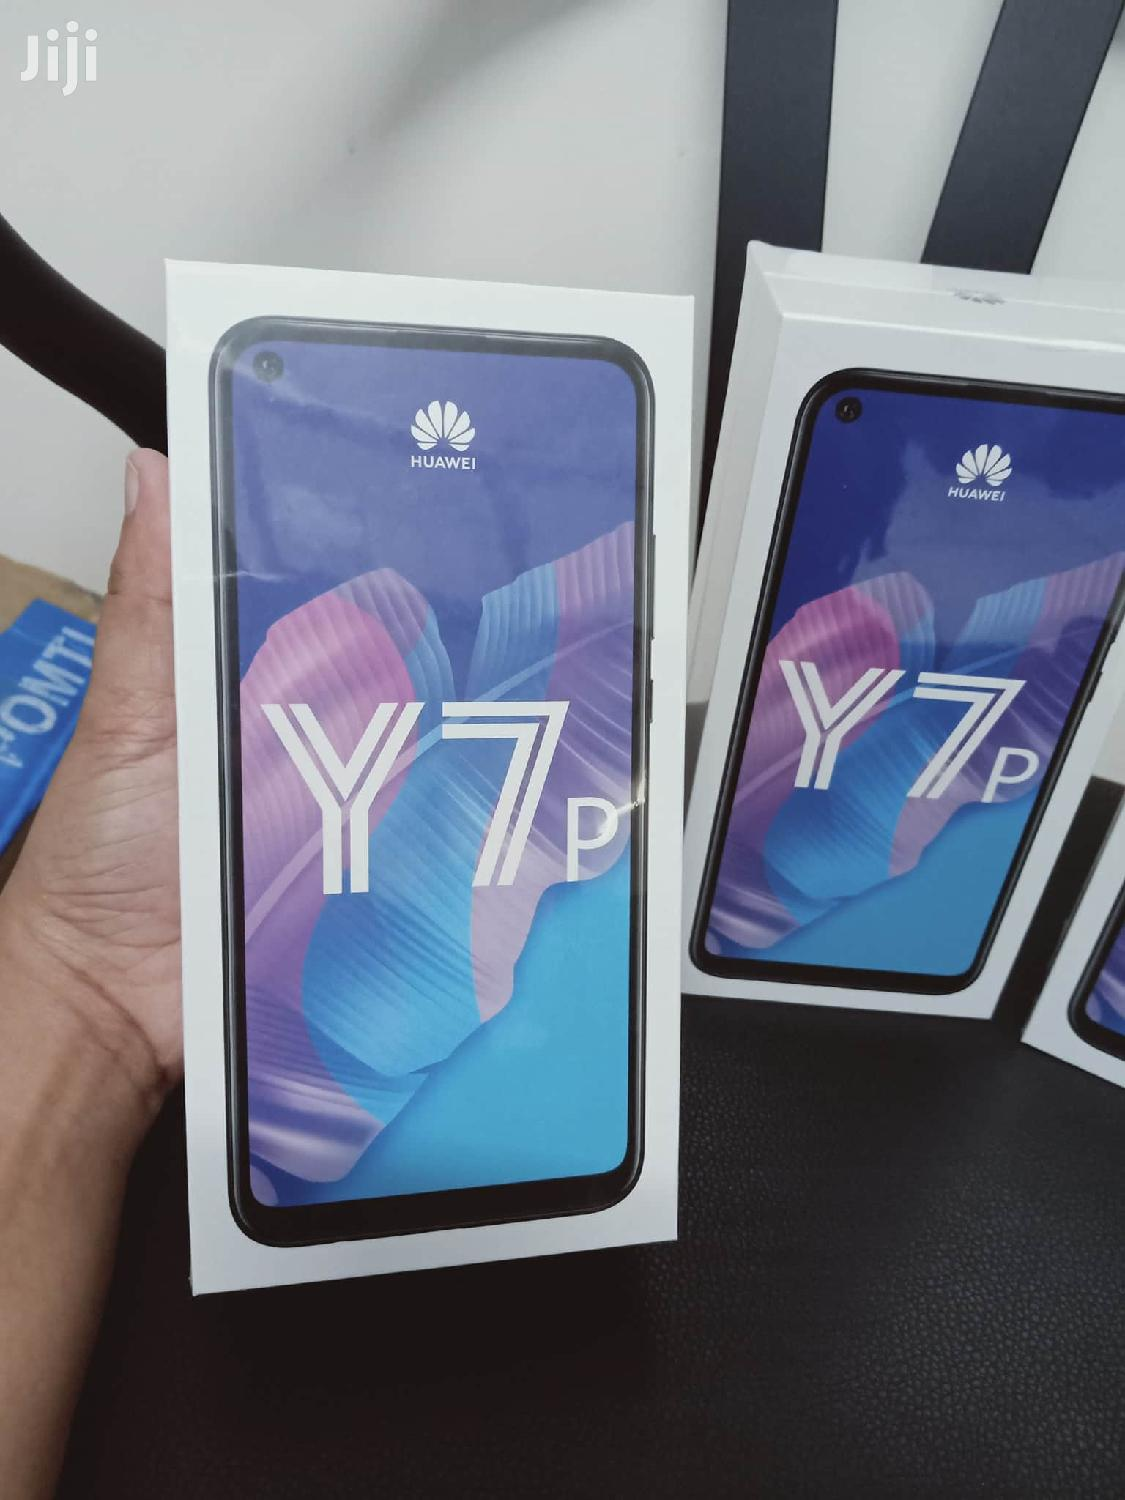 New Huawei Y7p 64 GB Black | Mobile Phones for sale in Nairobi Central, Nairobi, Kenya